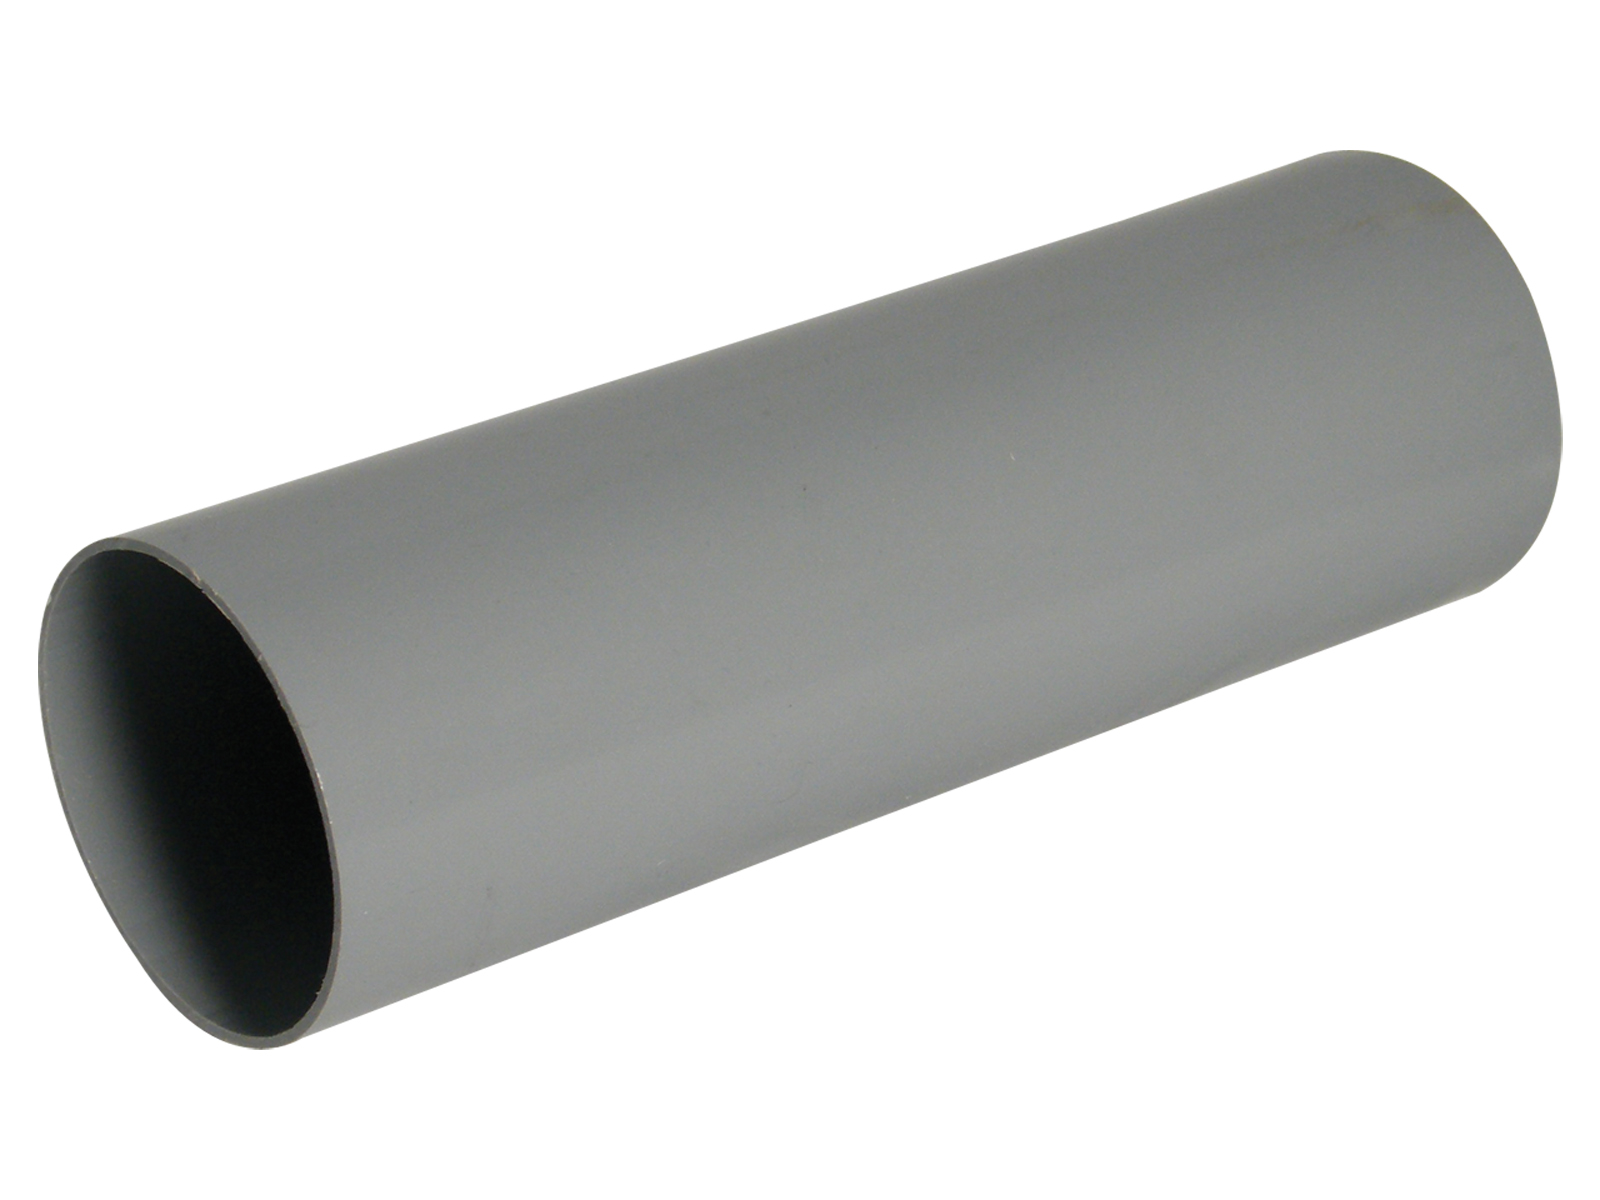 FLOPLAST 68MM ROUND DOWNPIPE - RP5.5 PIPE 5.5M - GREY